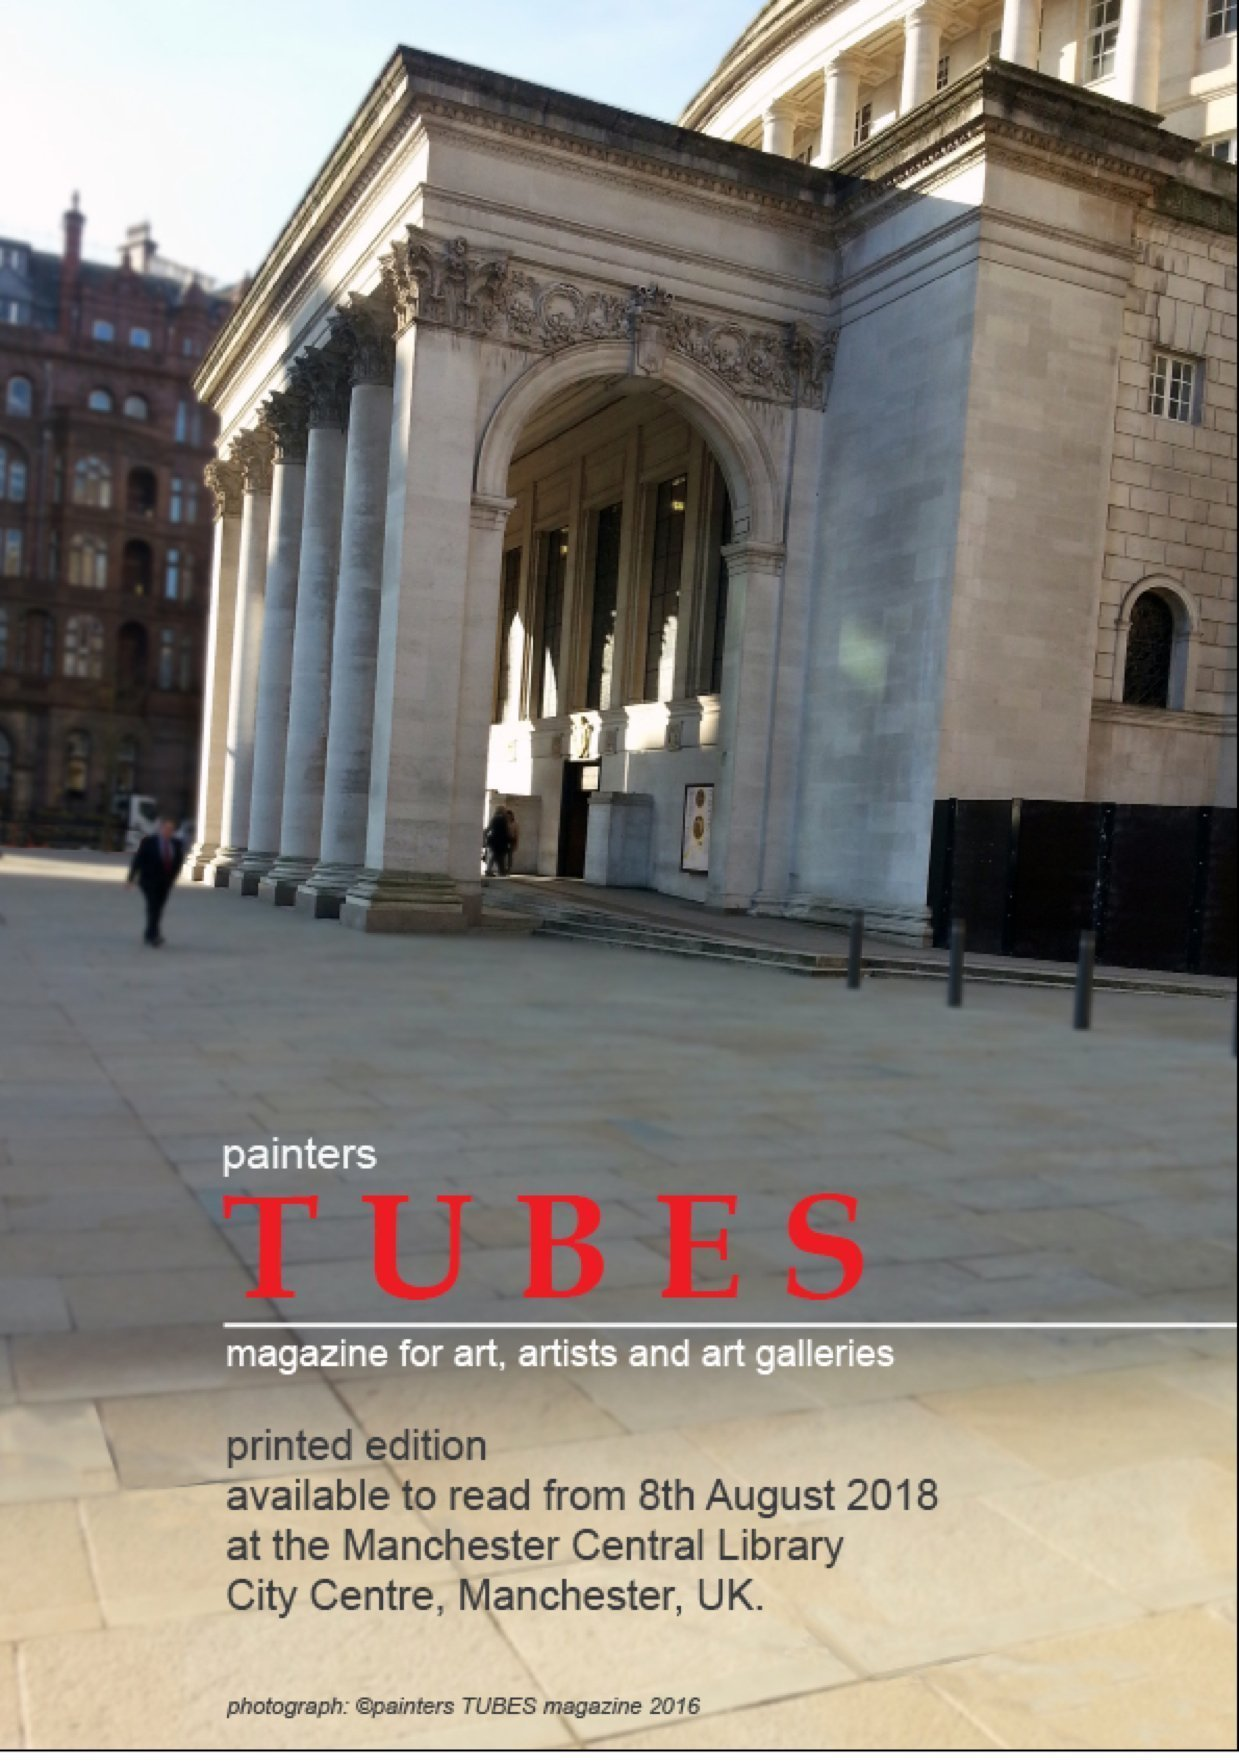 painters Tubes magazine at Manchester Central Library